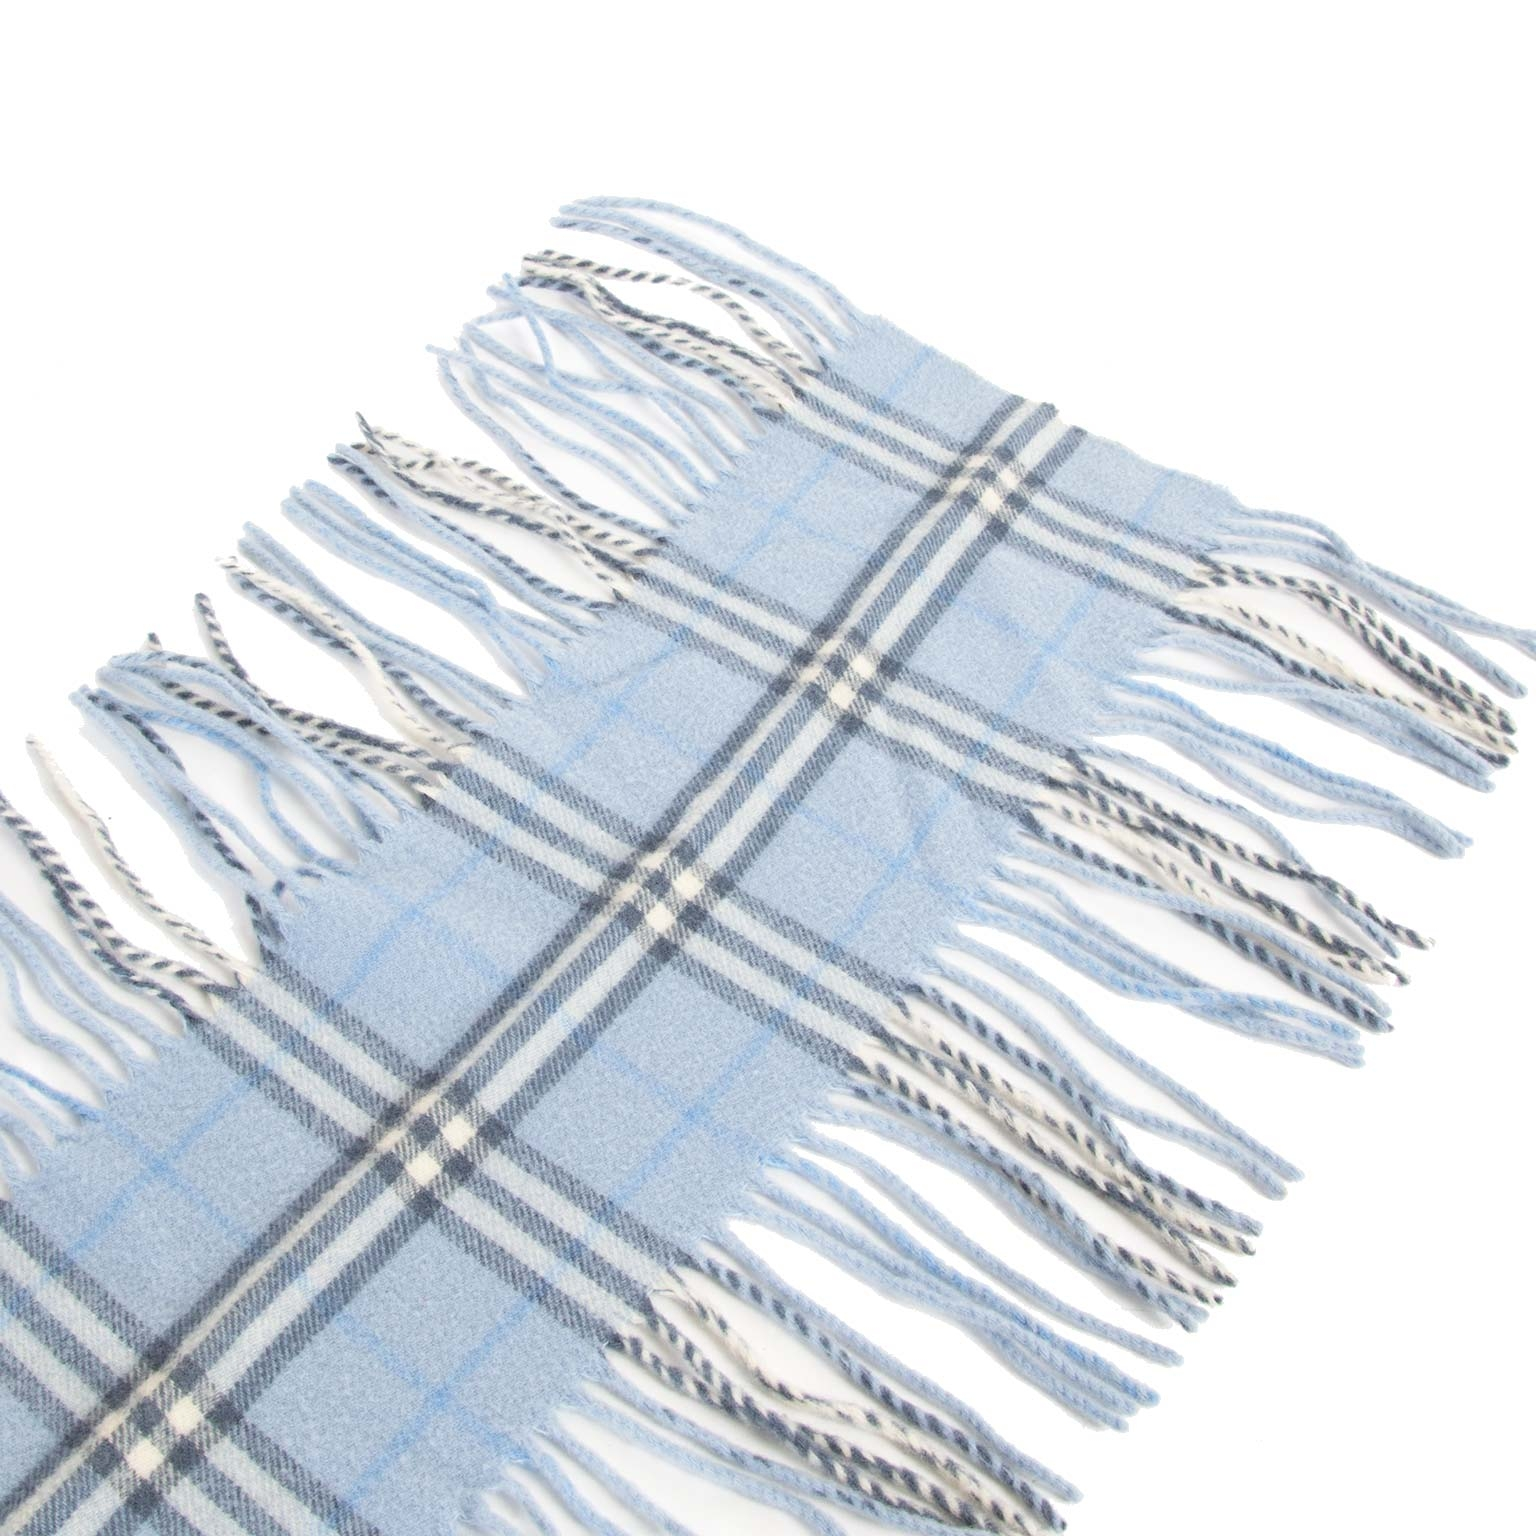 we buy and sell your authentic Burberry Baby Blue Fringe Scarf for the best price